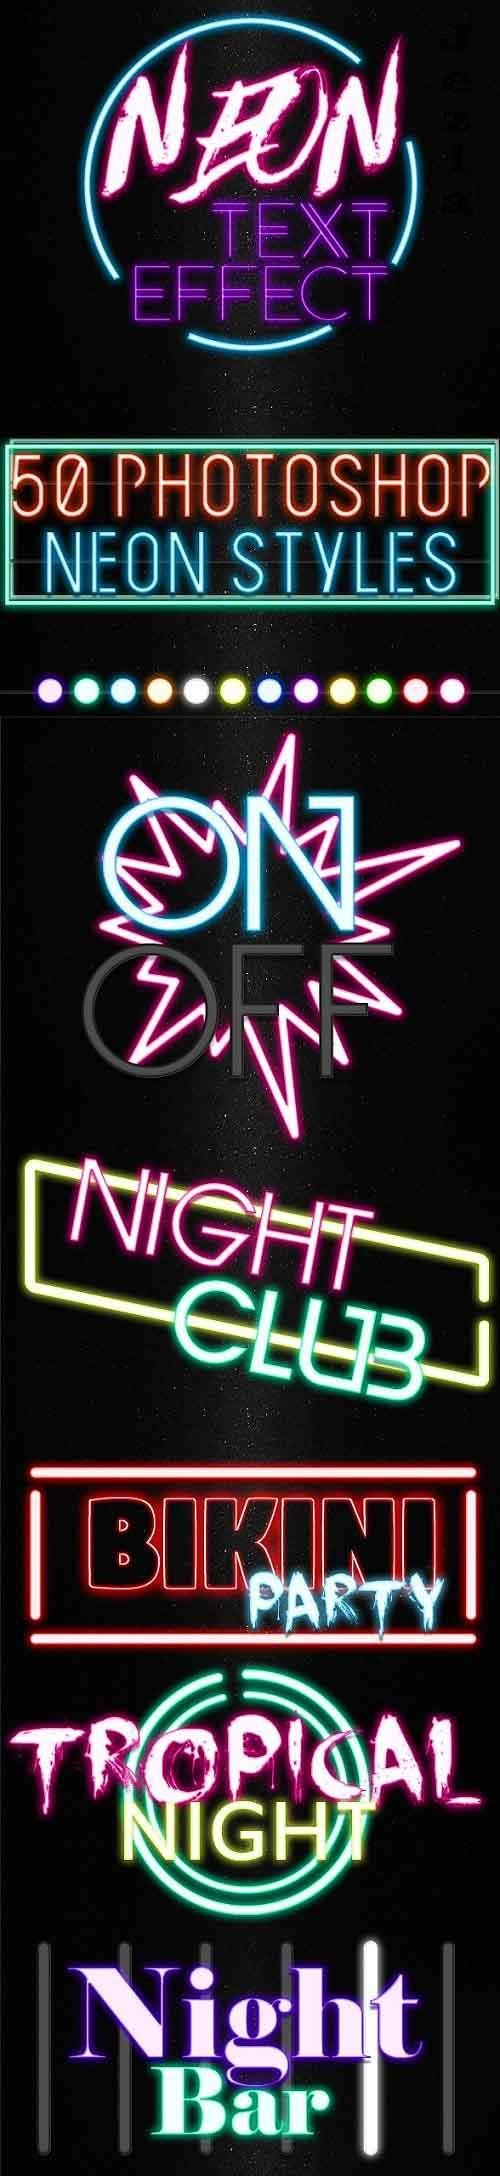 GraphicRiver - Neon Text Effect - 50 Photoshop Neon Styles 29048388